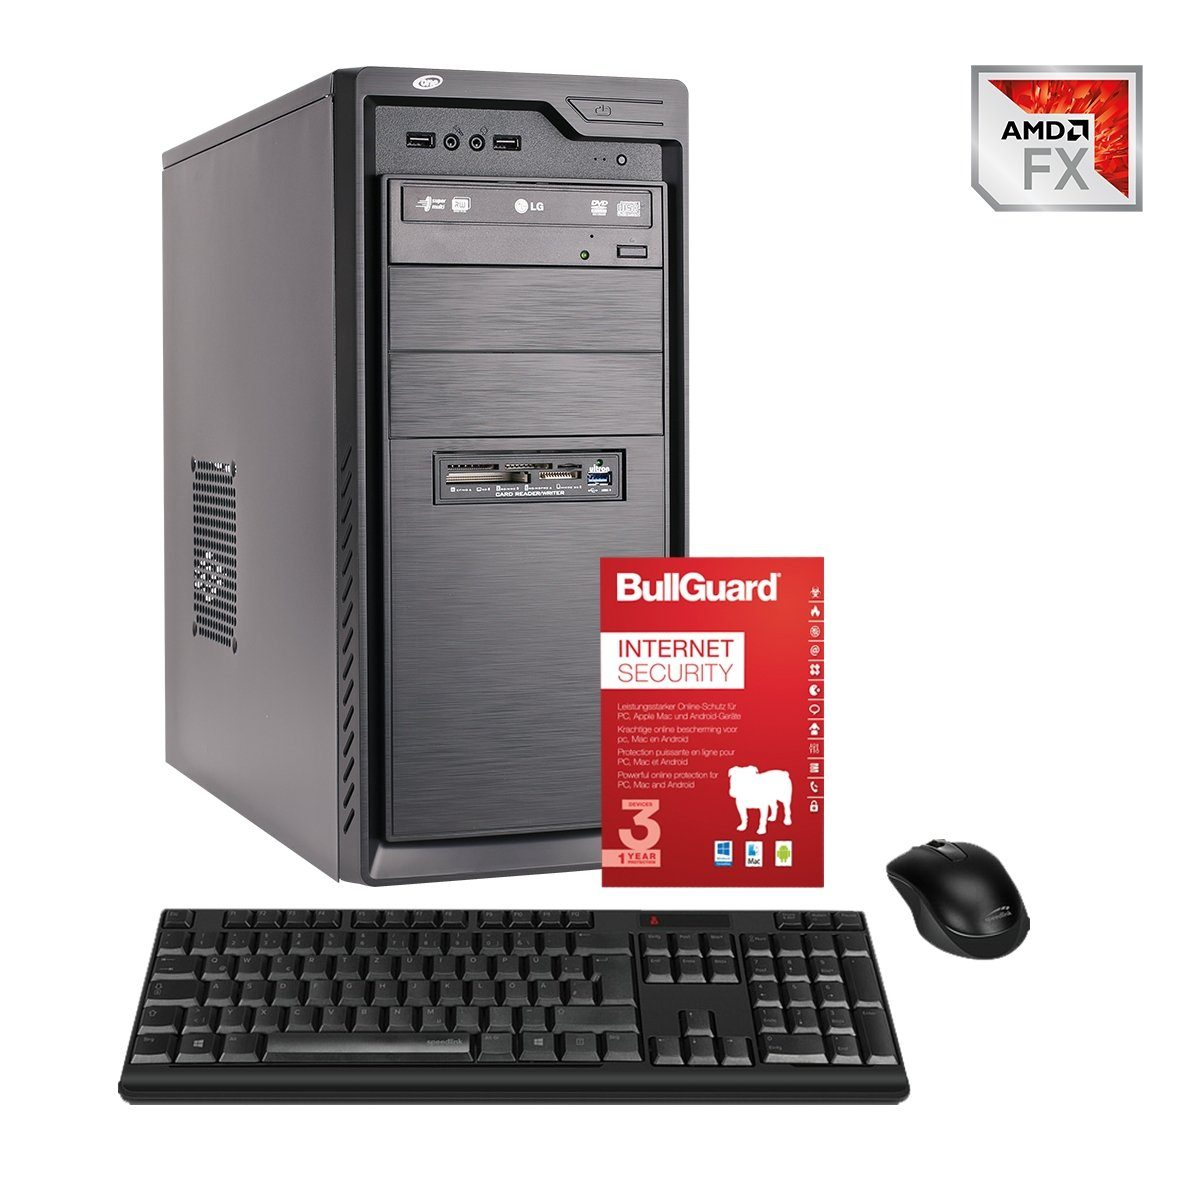 ONE PC, FX-4300, Radeon HD 3000, 4GB DDR3 RAM »Office PC 44017«